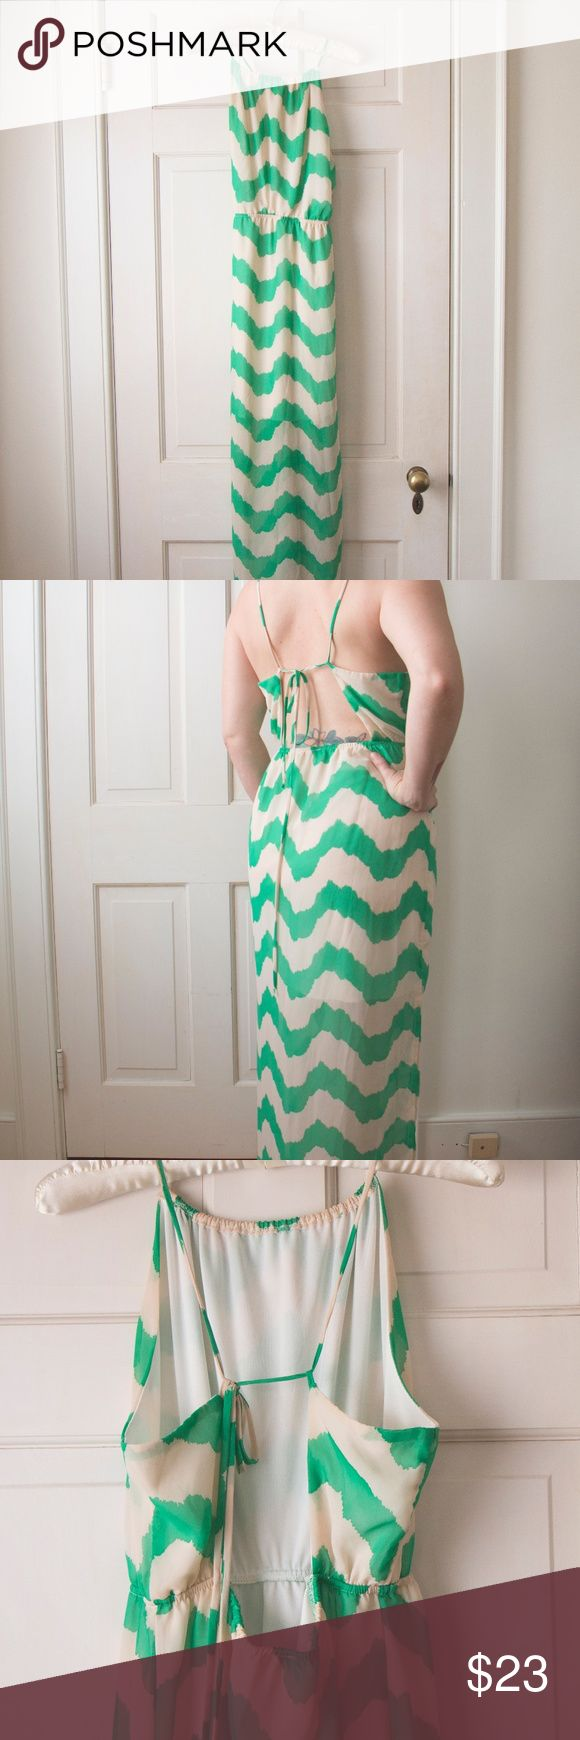 Rachel Kate Maxi Dress Extremely comfortable, open back, turquoise and white stripped maxi dress. Ties in the back. Gently worn. Rachel Kate Dresses Maxi